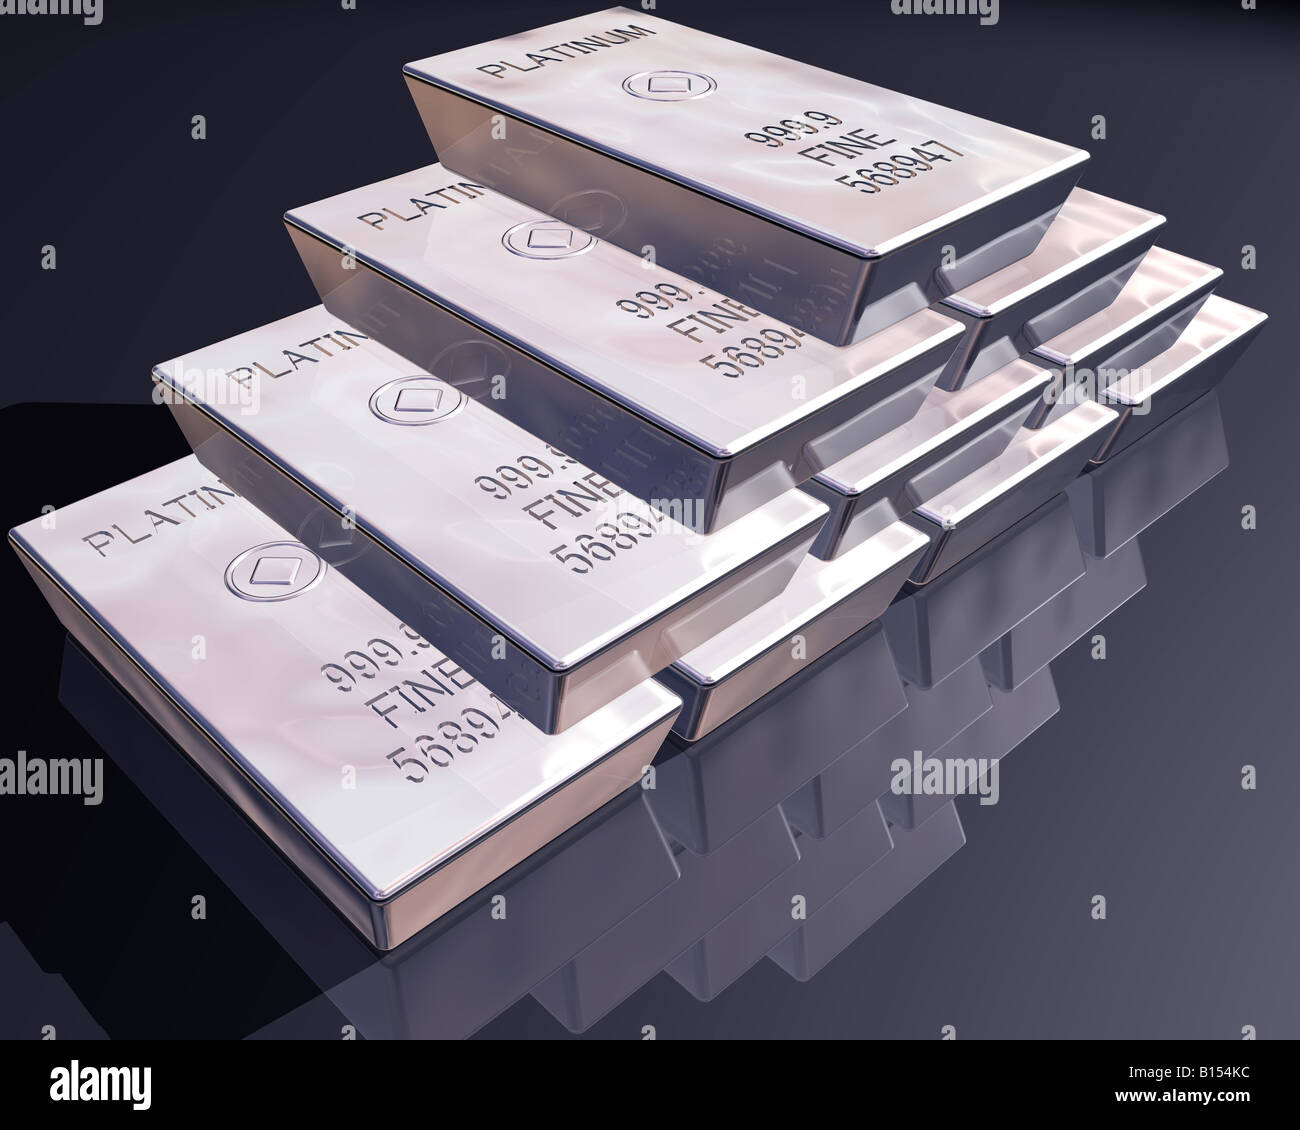 stack-of-pure-platinum-bars-on-a-reflect